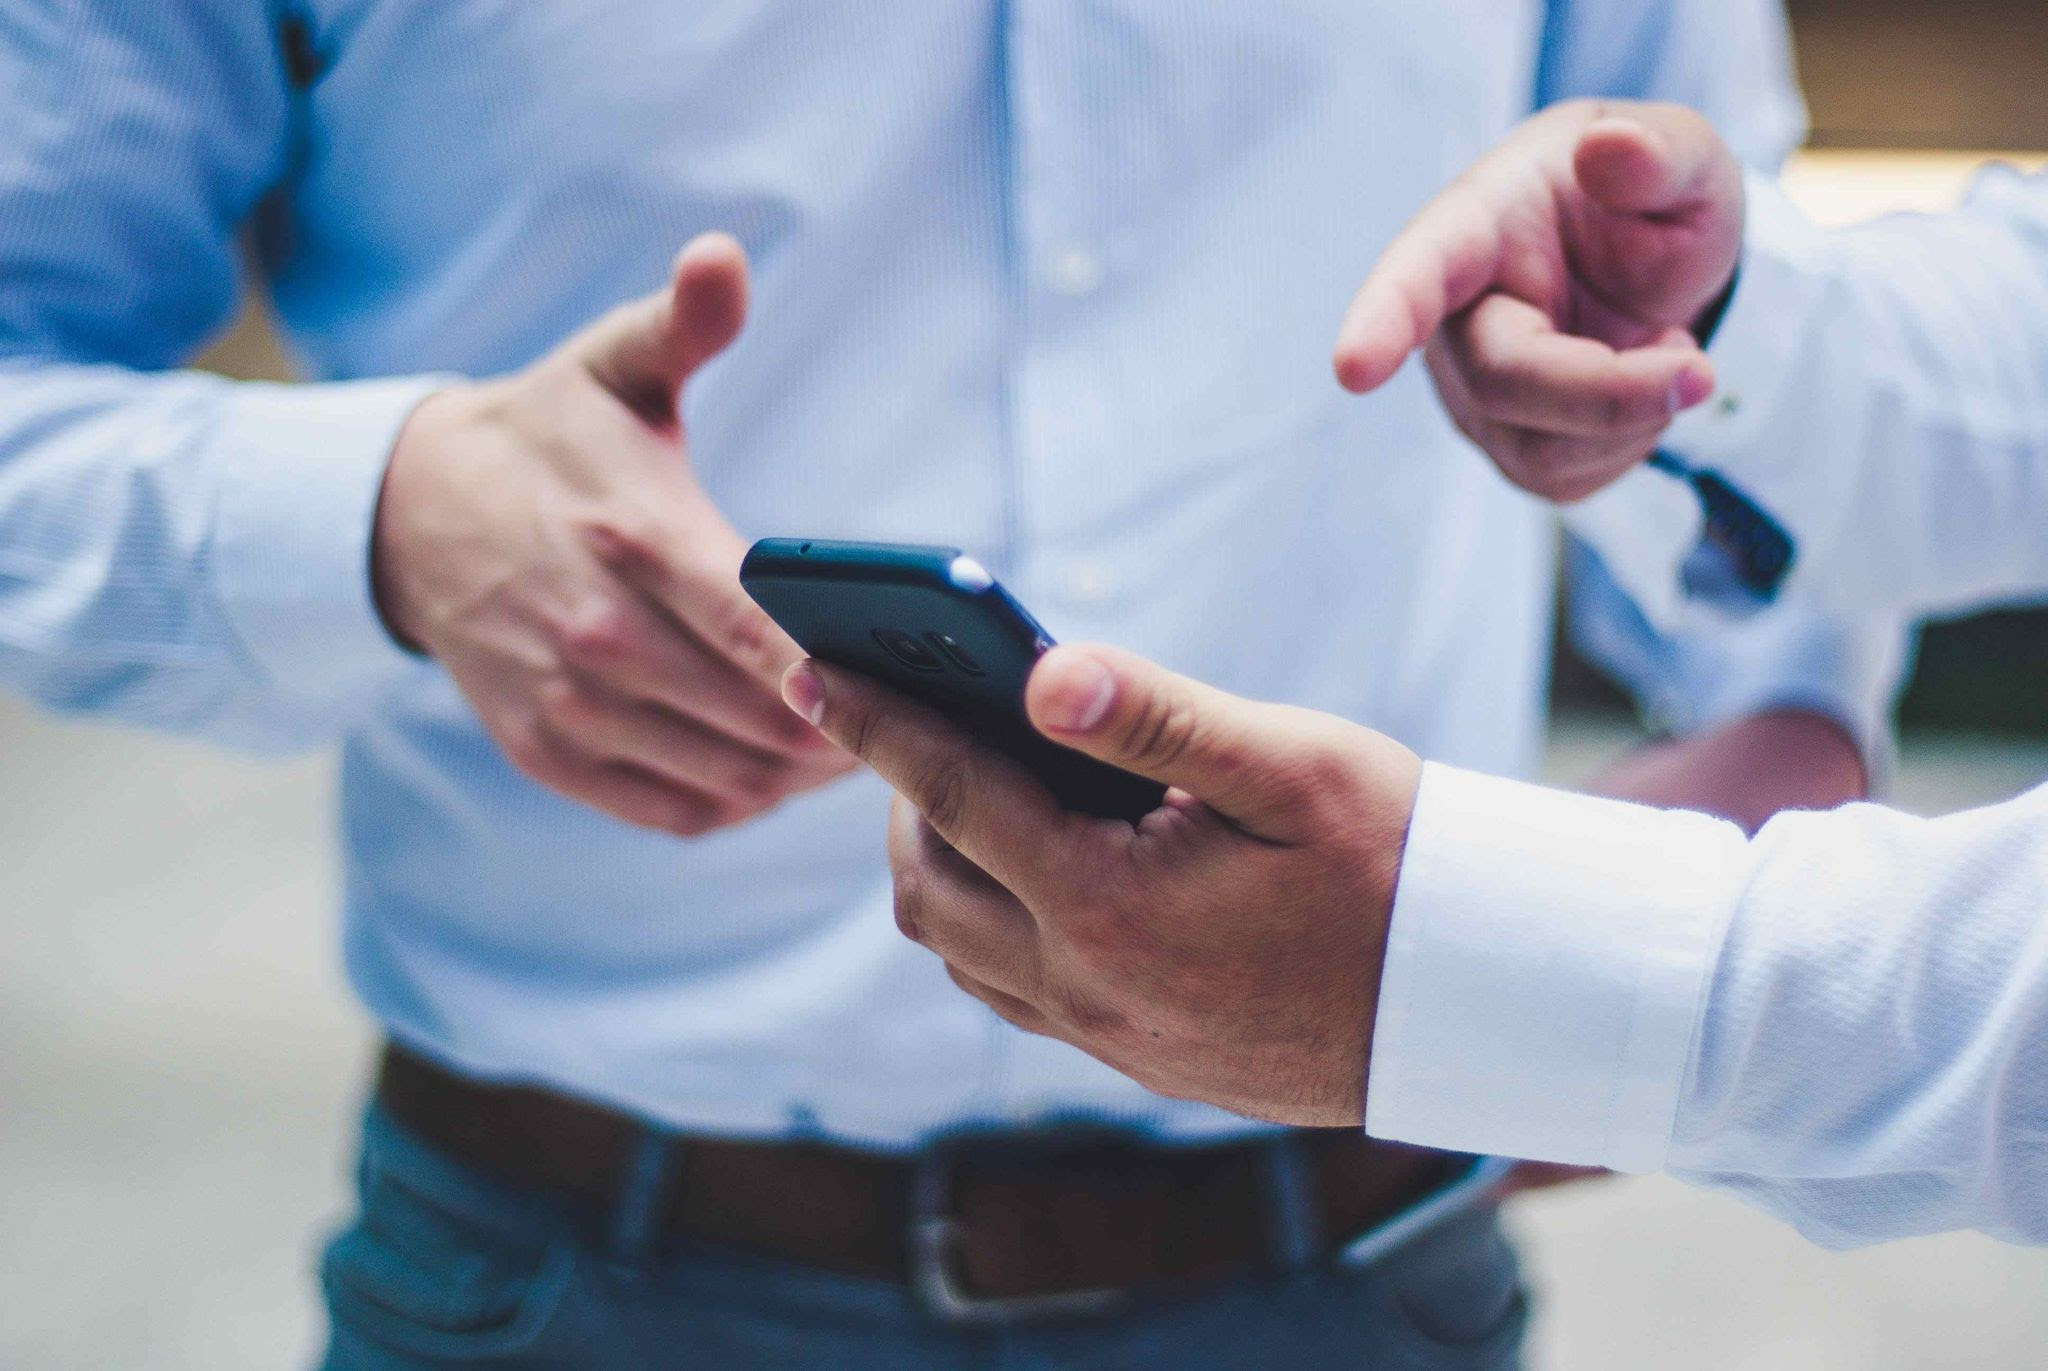 Two men in business clothes point at a smartphone